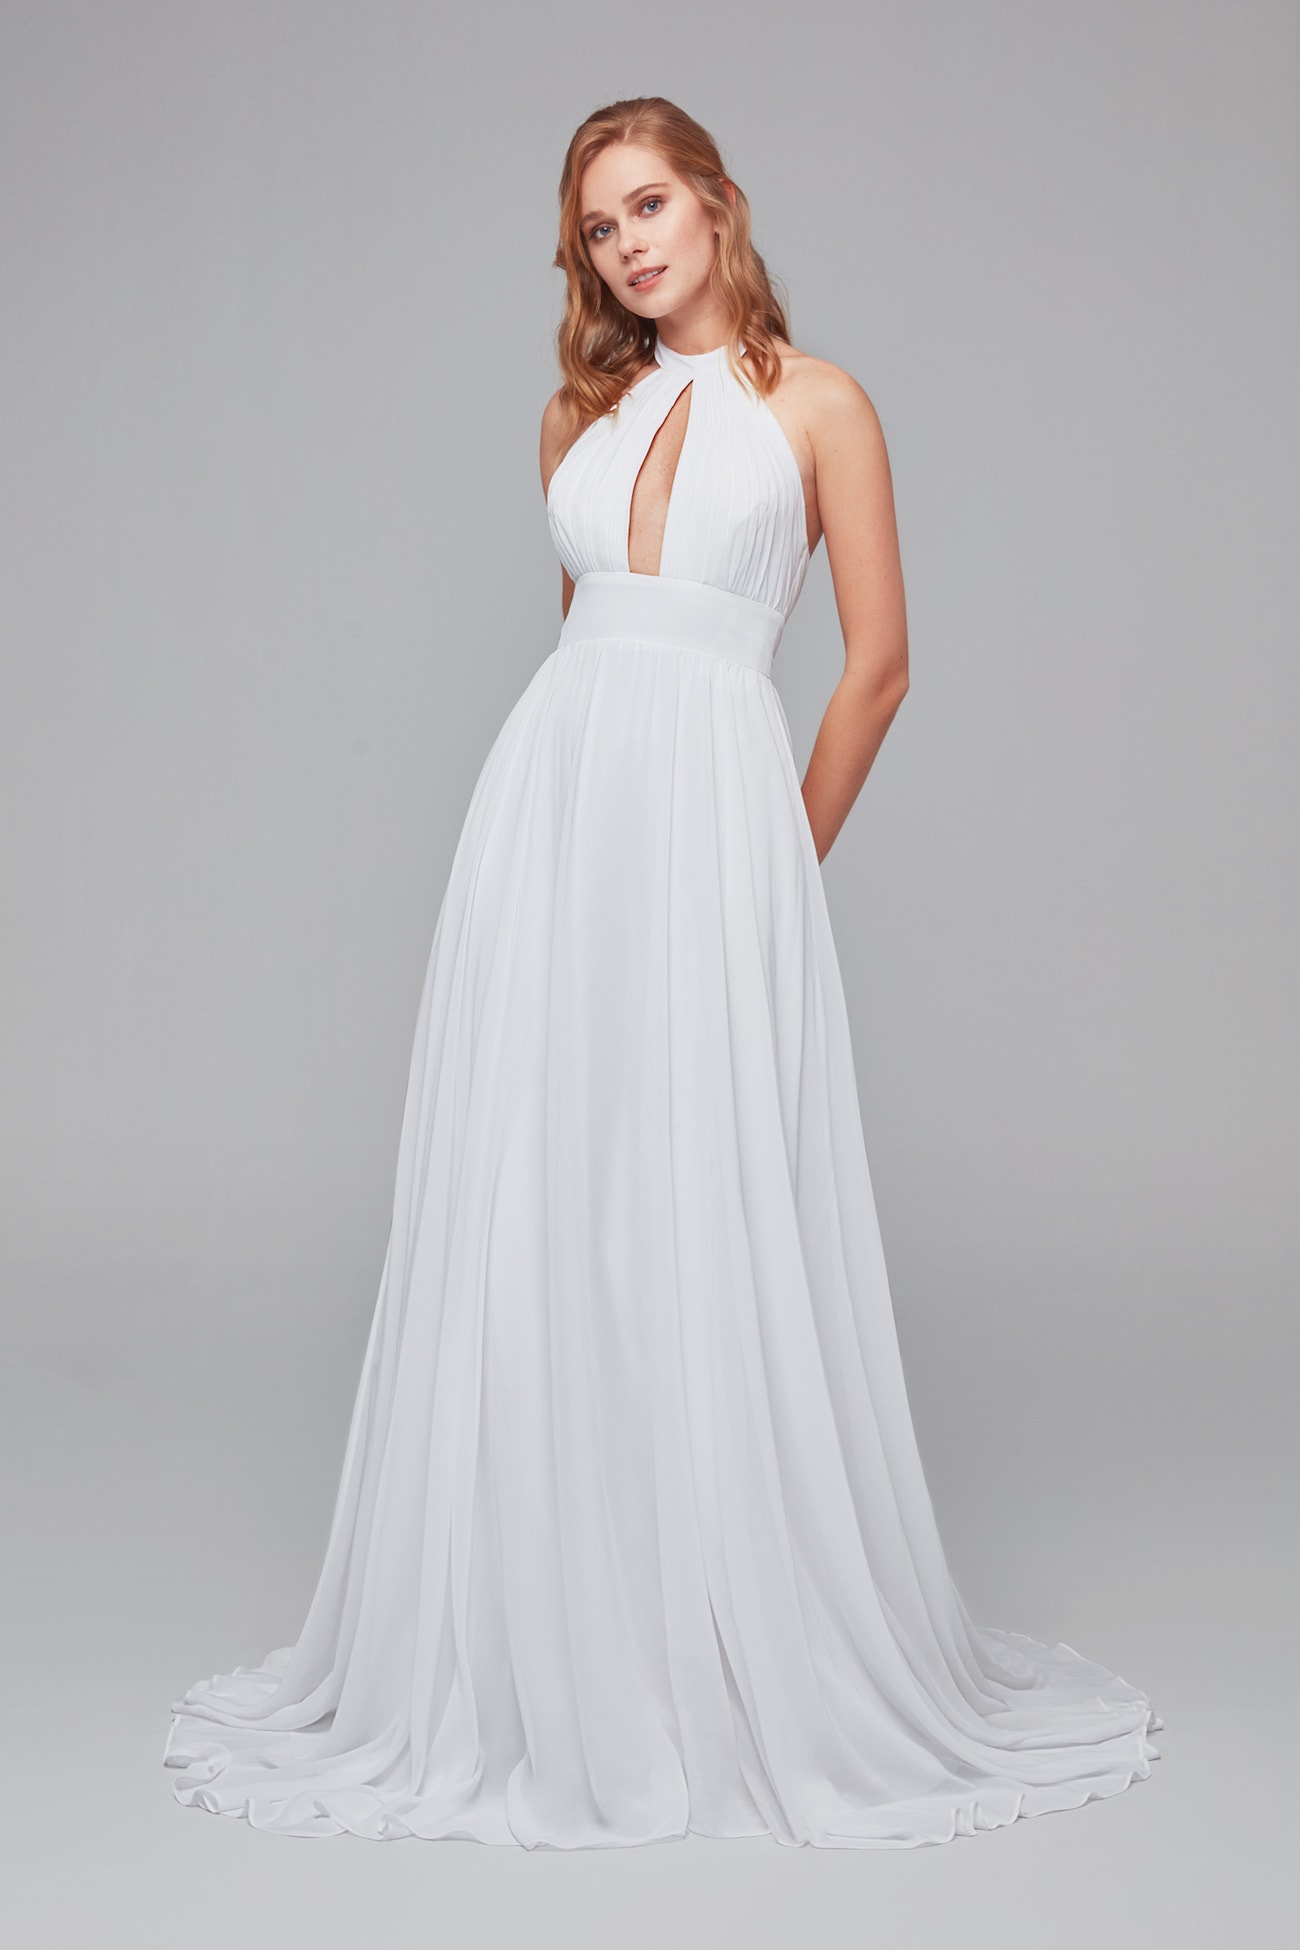 Bride&co 2018 Collection on SouthBound Bride